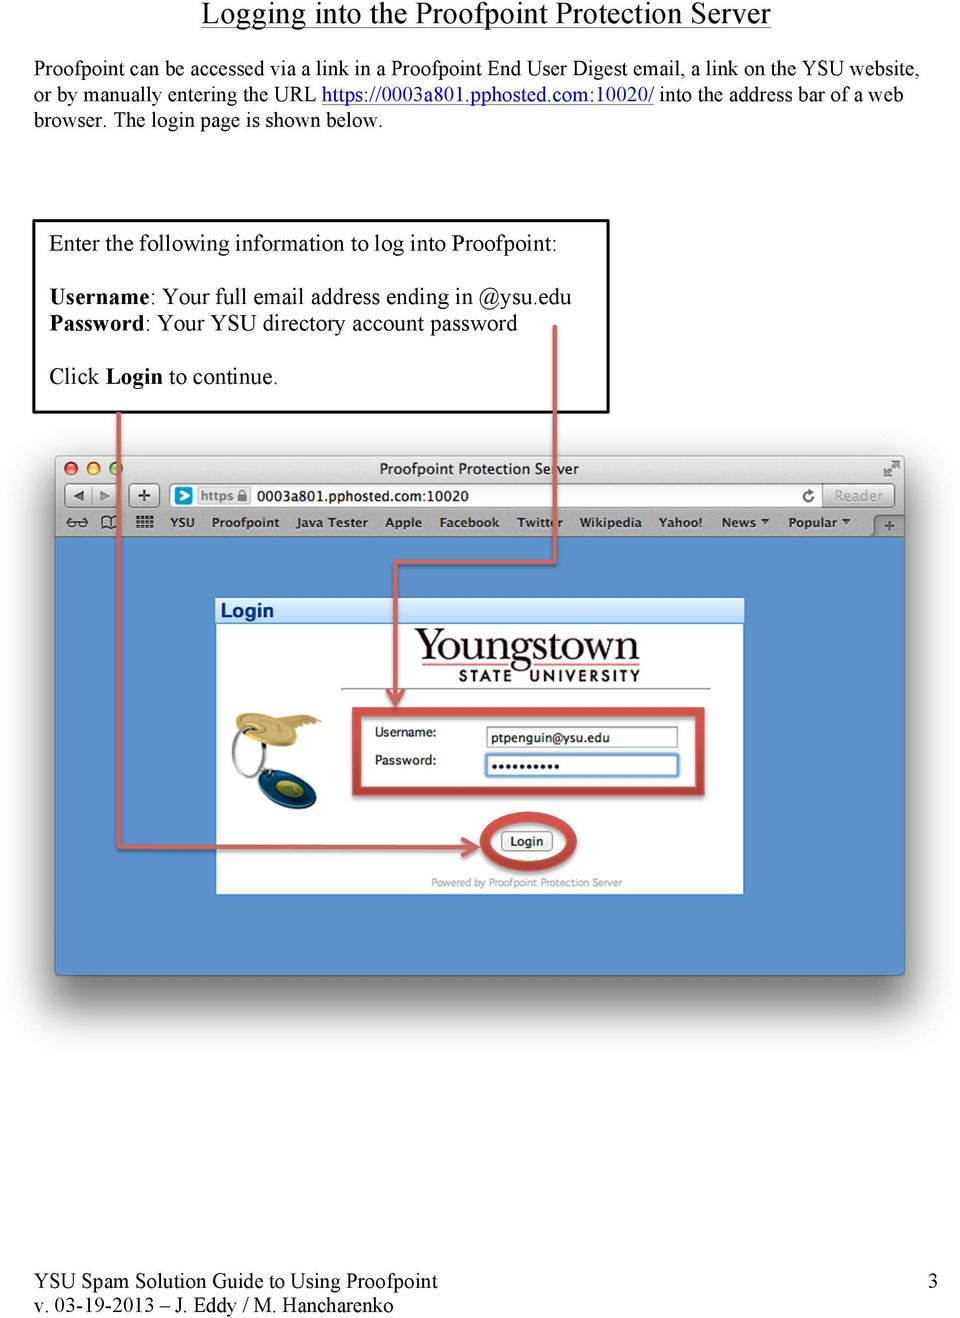 com:10020/ into the address bar of a web browser. The login page is shown below.